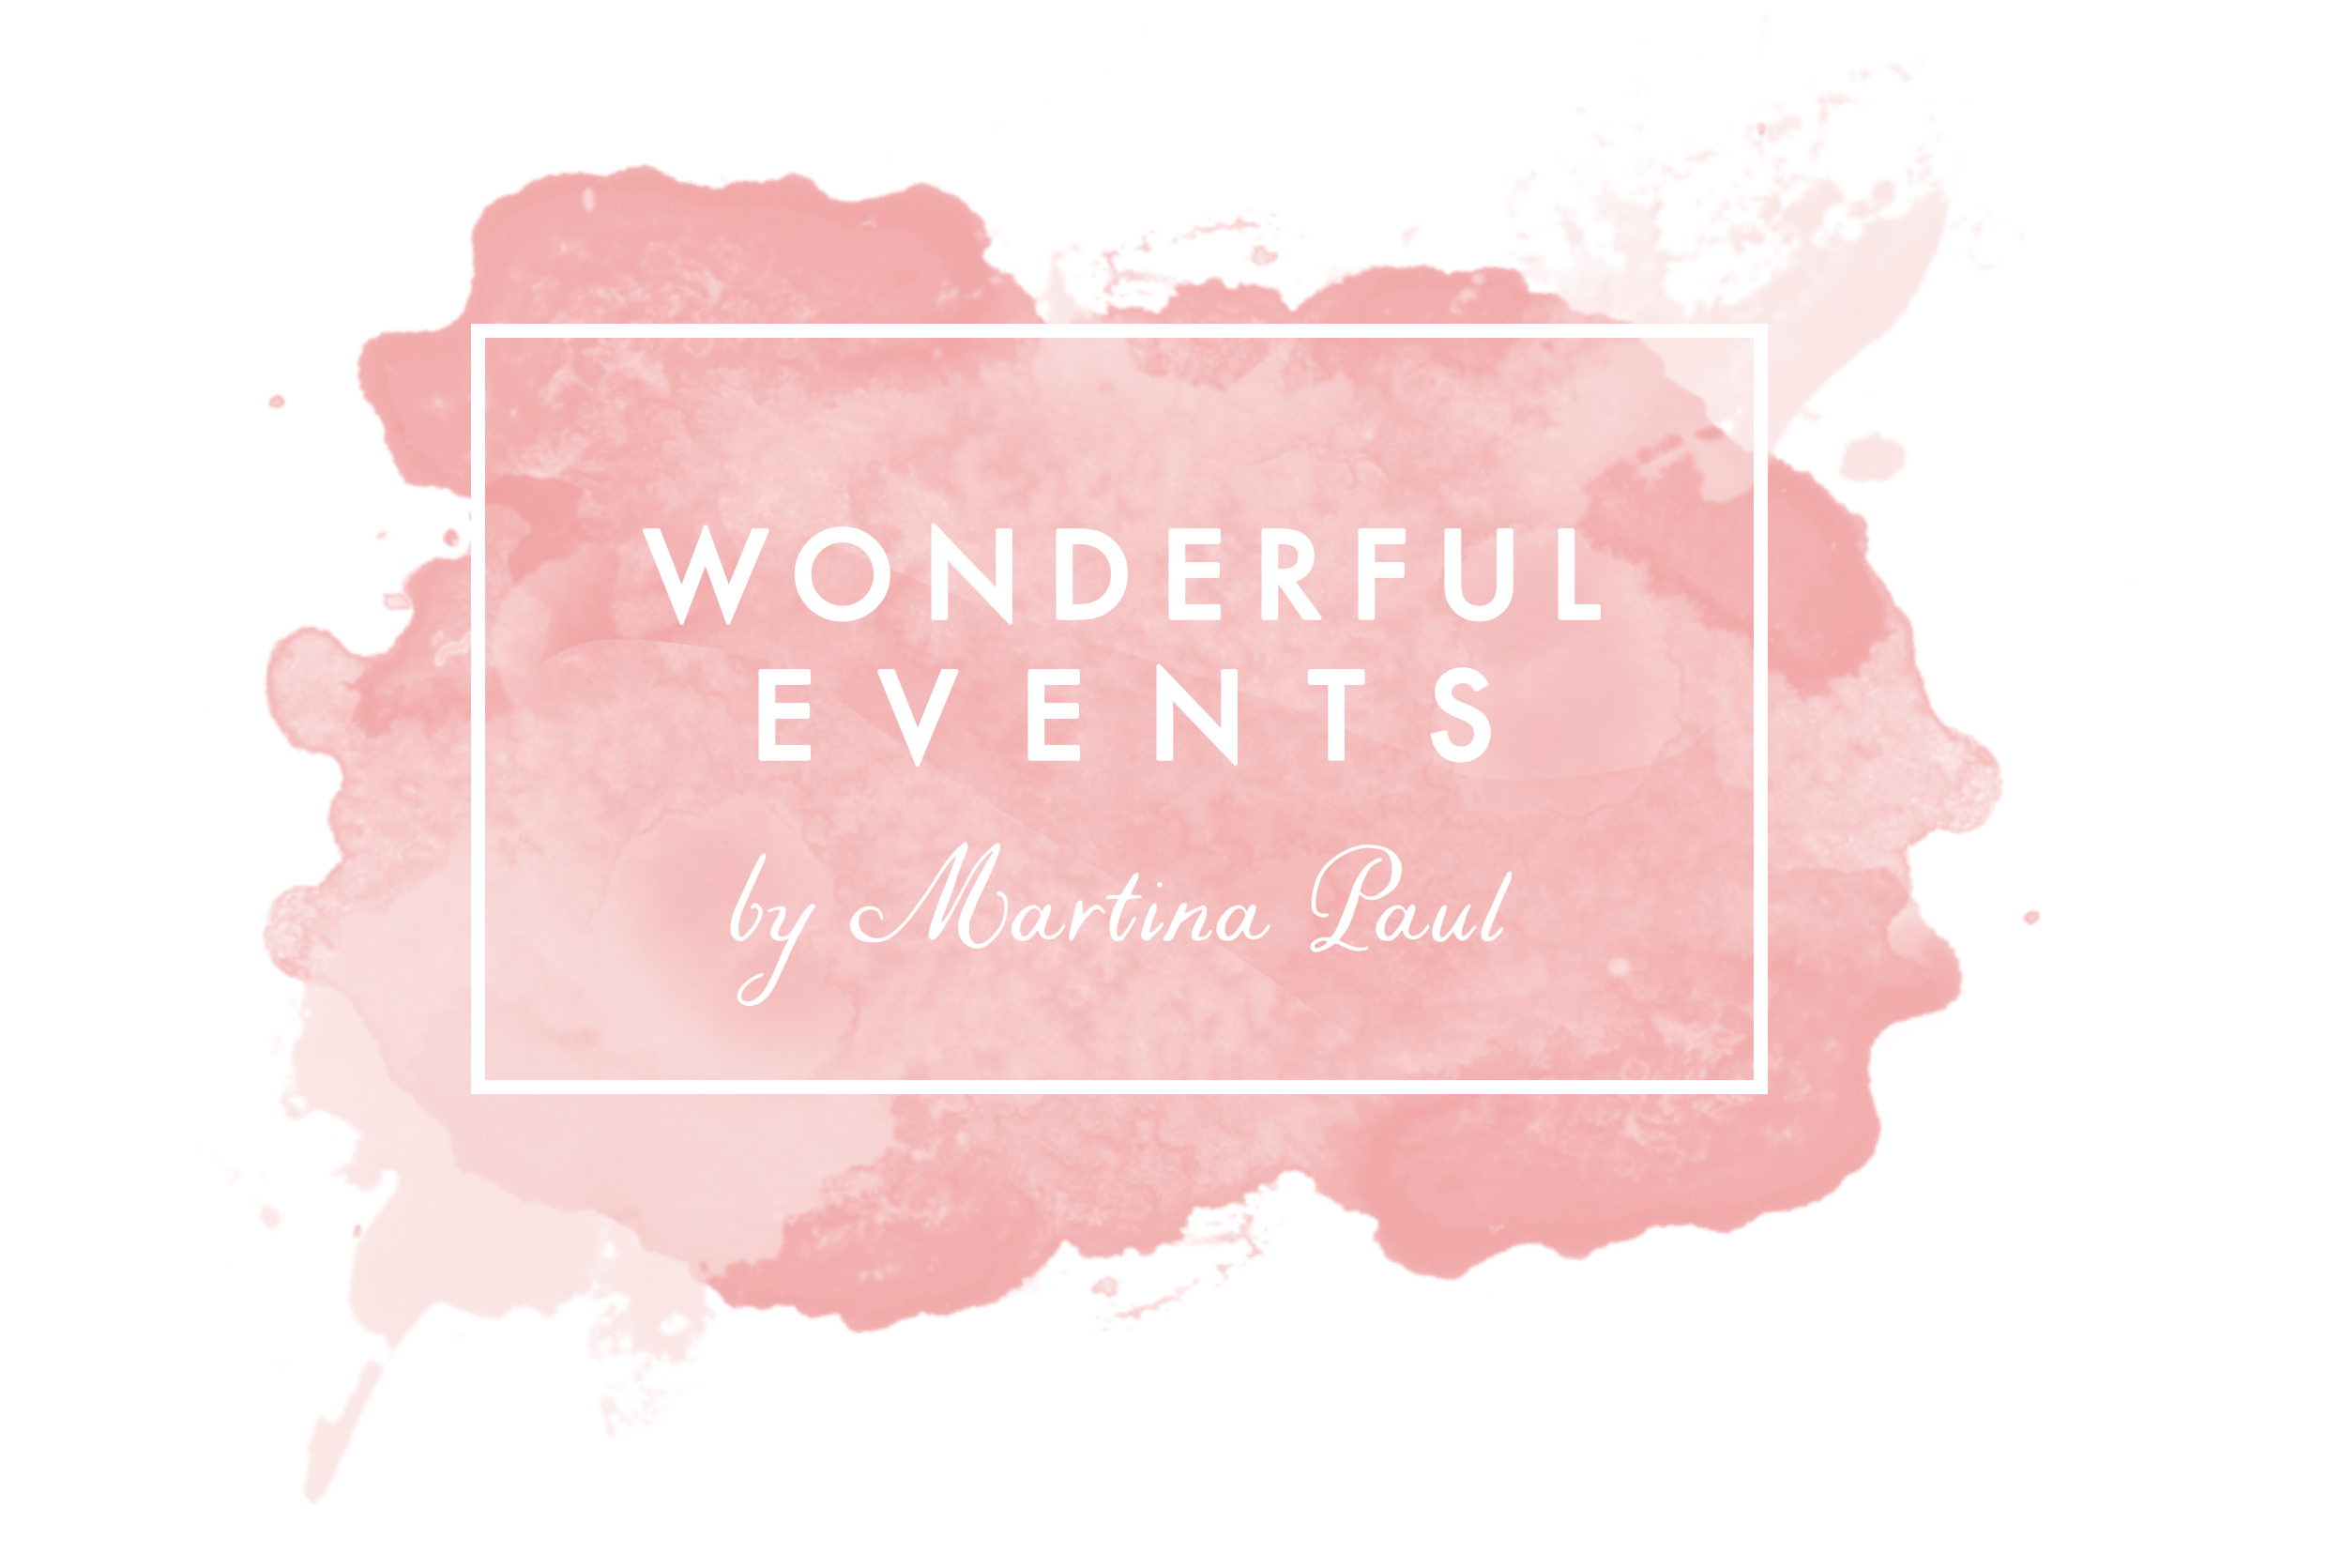 Wonderful Events